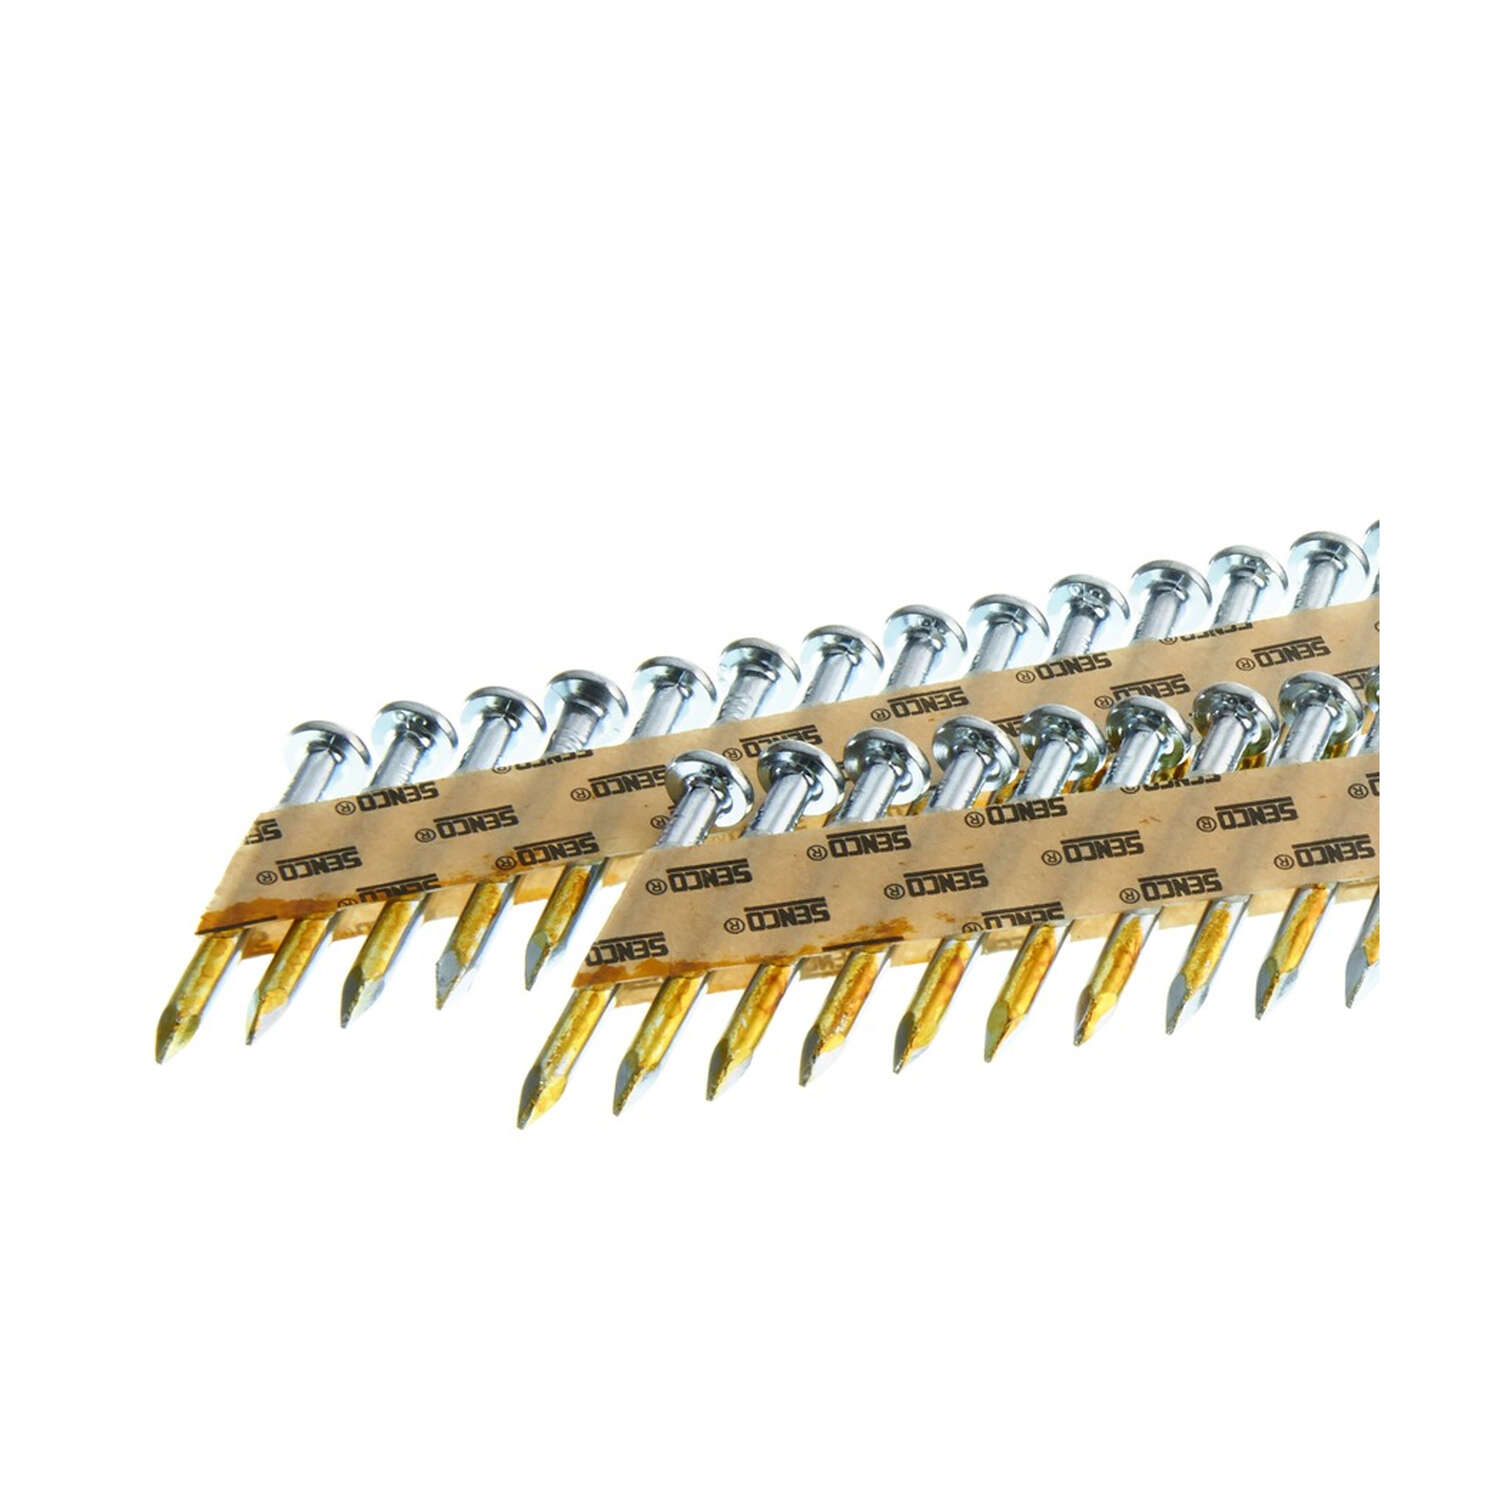 Senco  1-1/2 in. Angled Strip  Metal Connector Nails  34 deg. Smooth Shank  2,000 pk